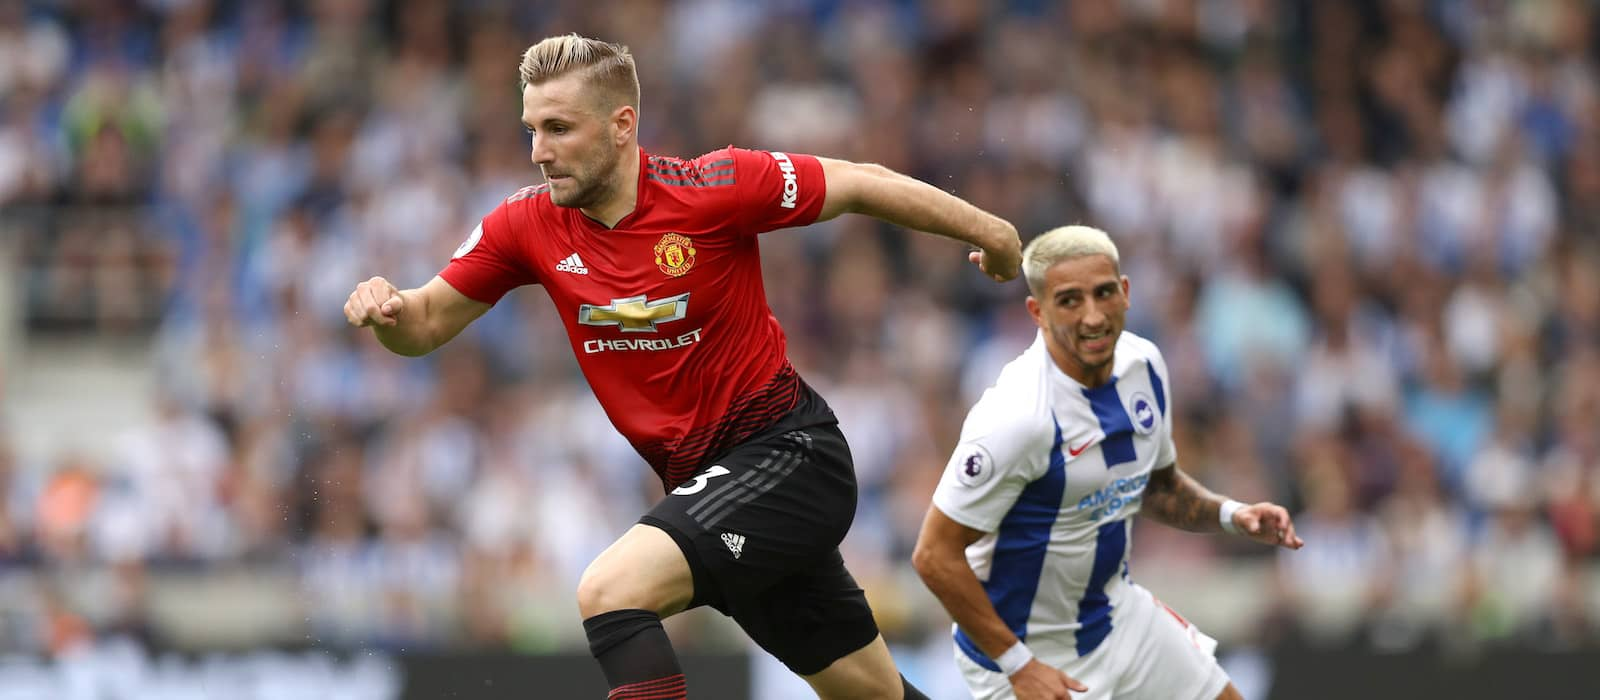 Alexis Sanchez and Luke Shaw injury doubts for Tottenham Hotspur clash – report